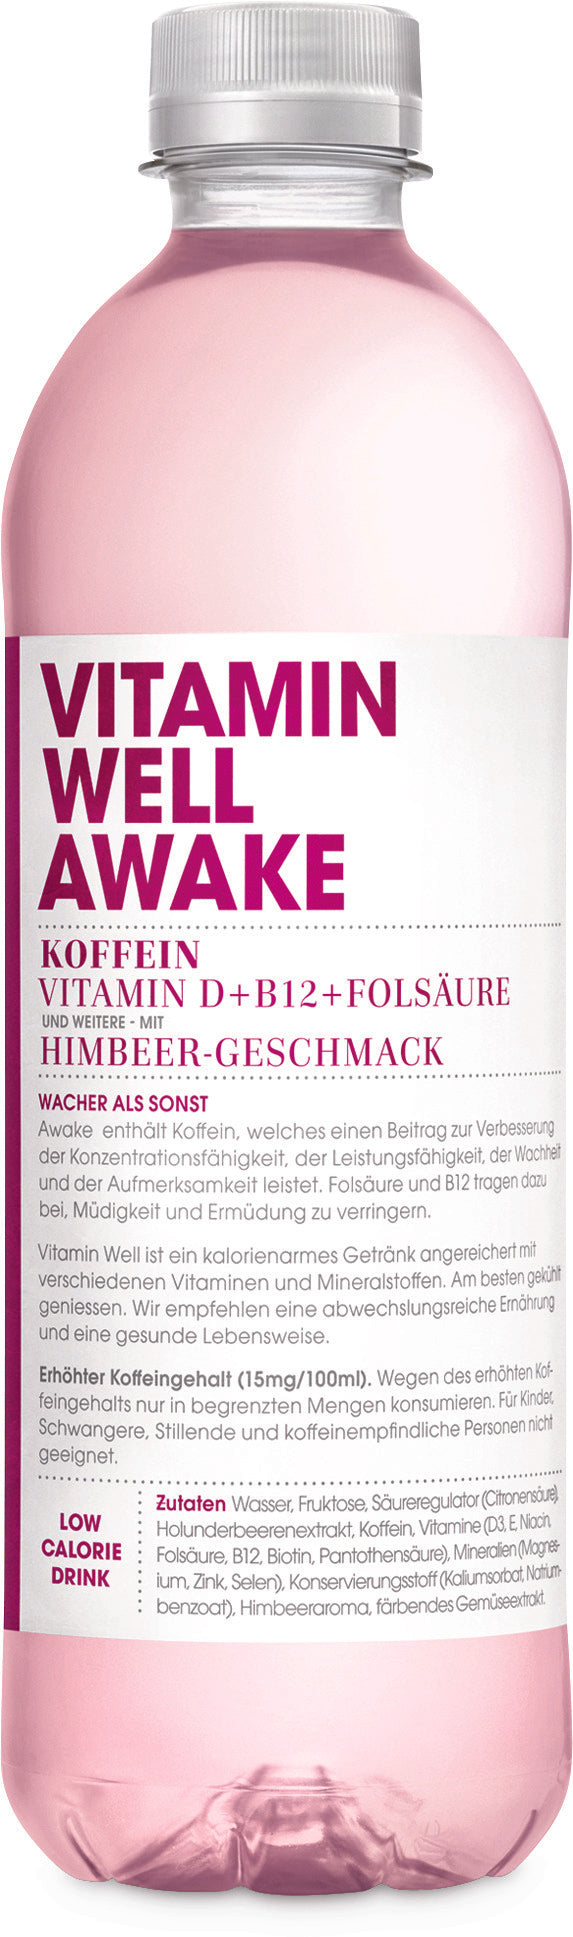 Vitamin Well Awake 50Cl Pet